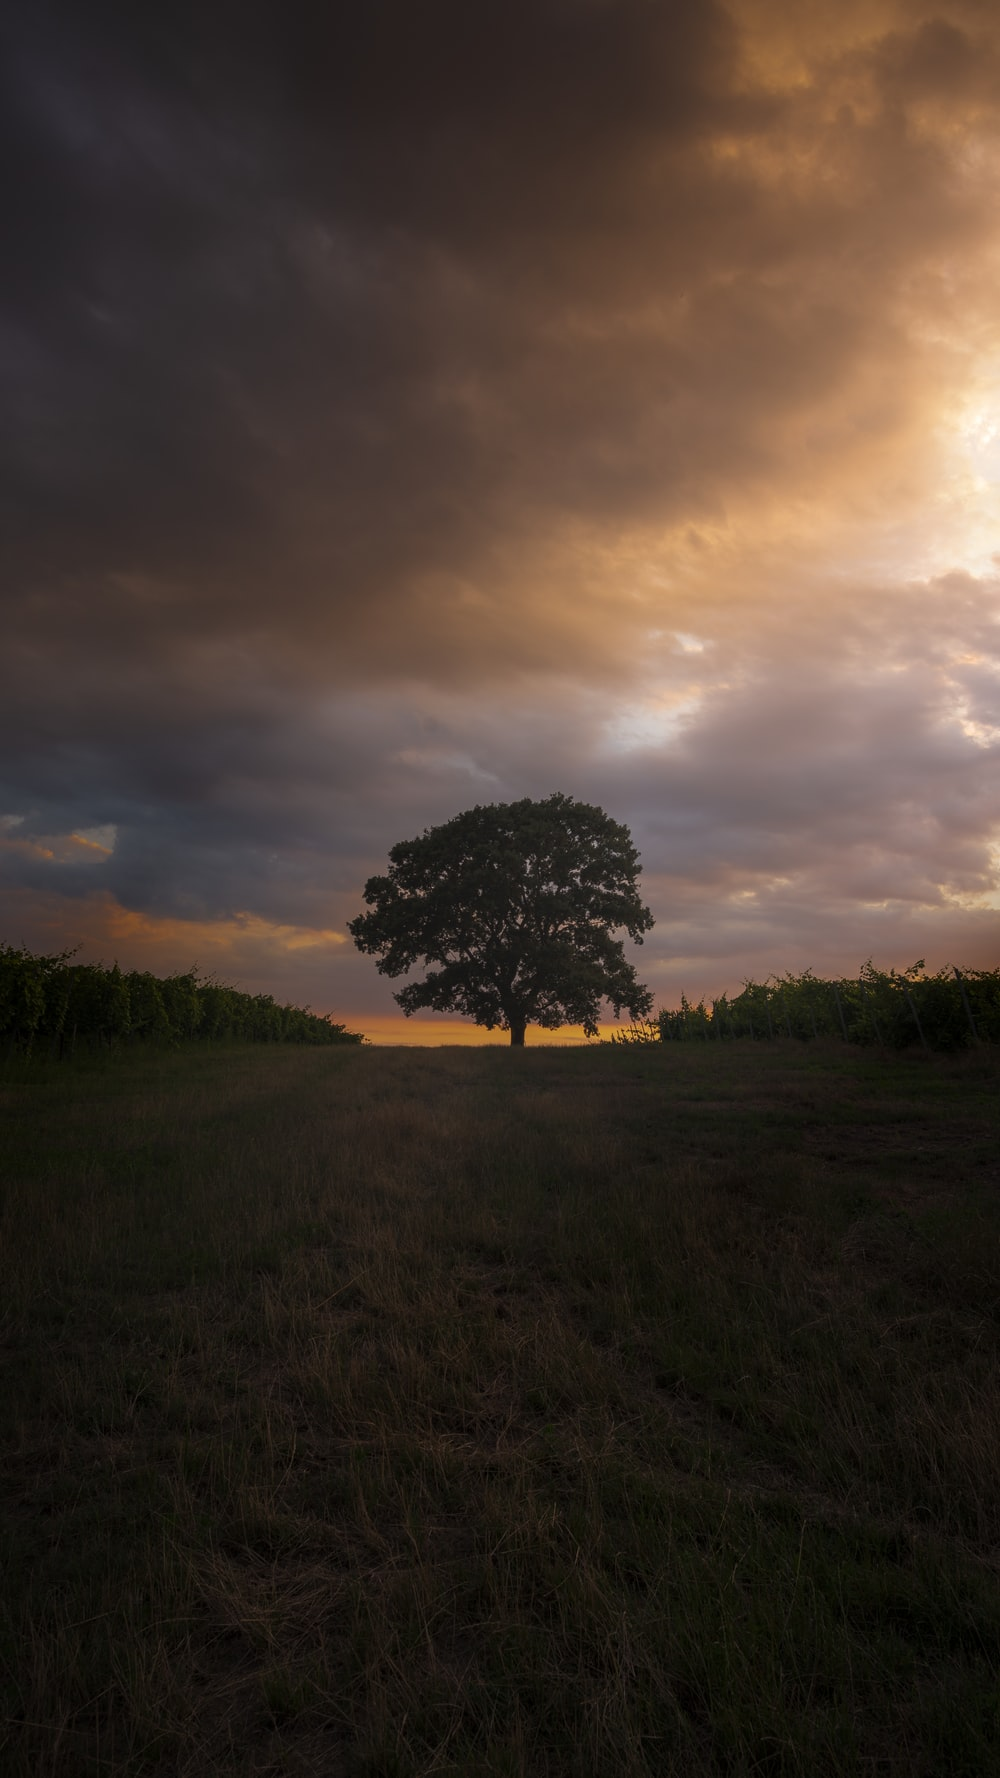 green lonely tree in green field under white and orange skies